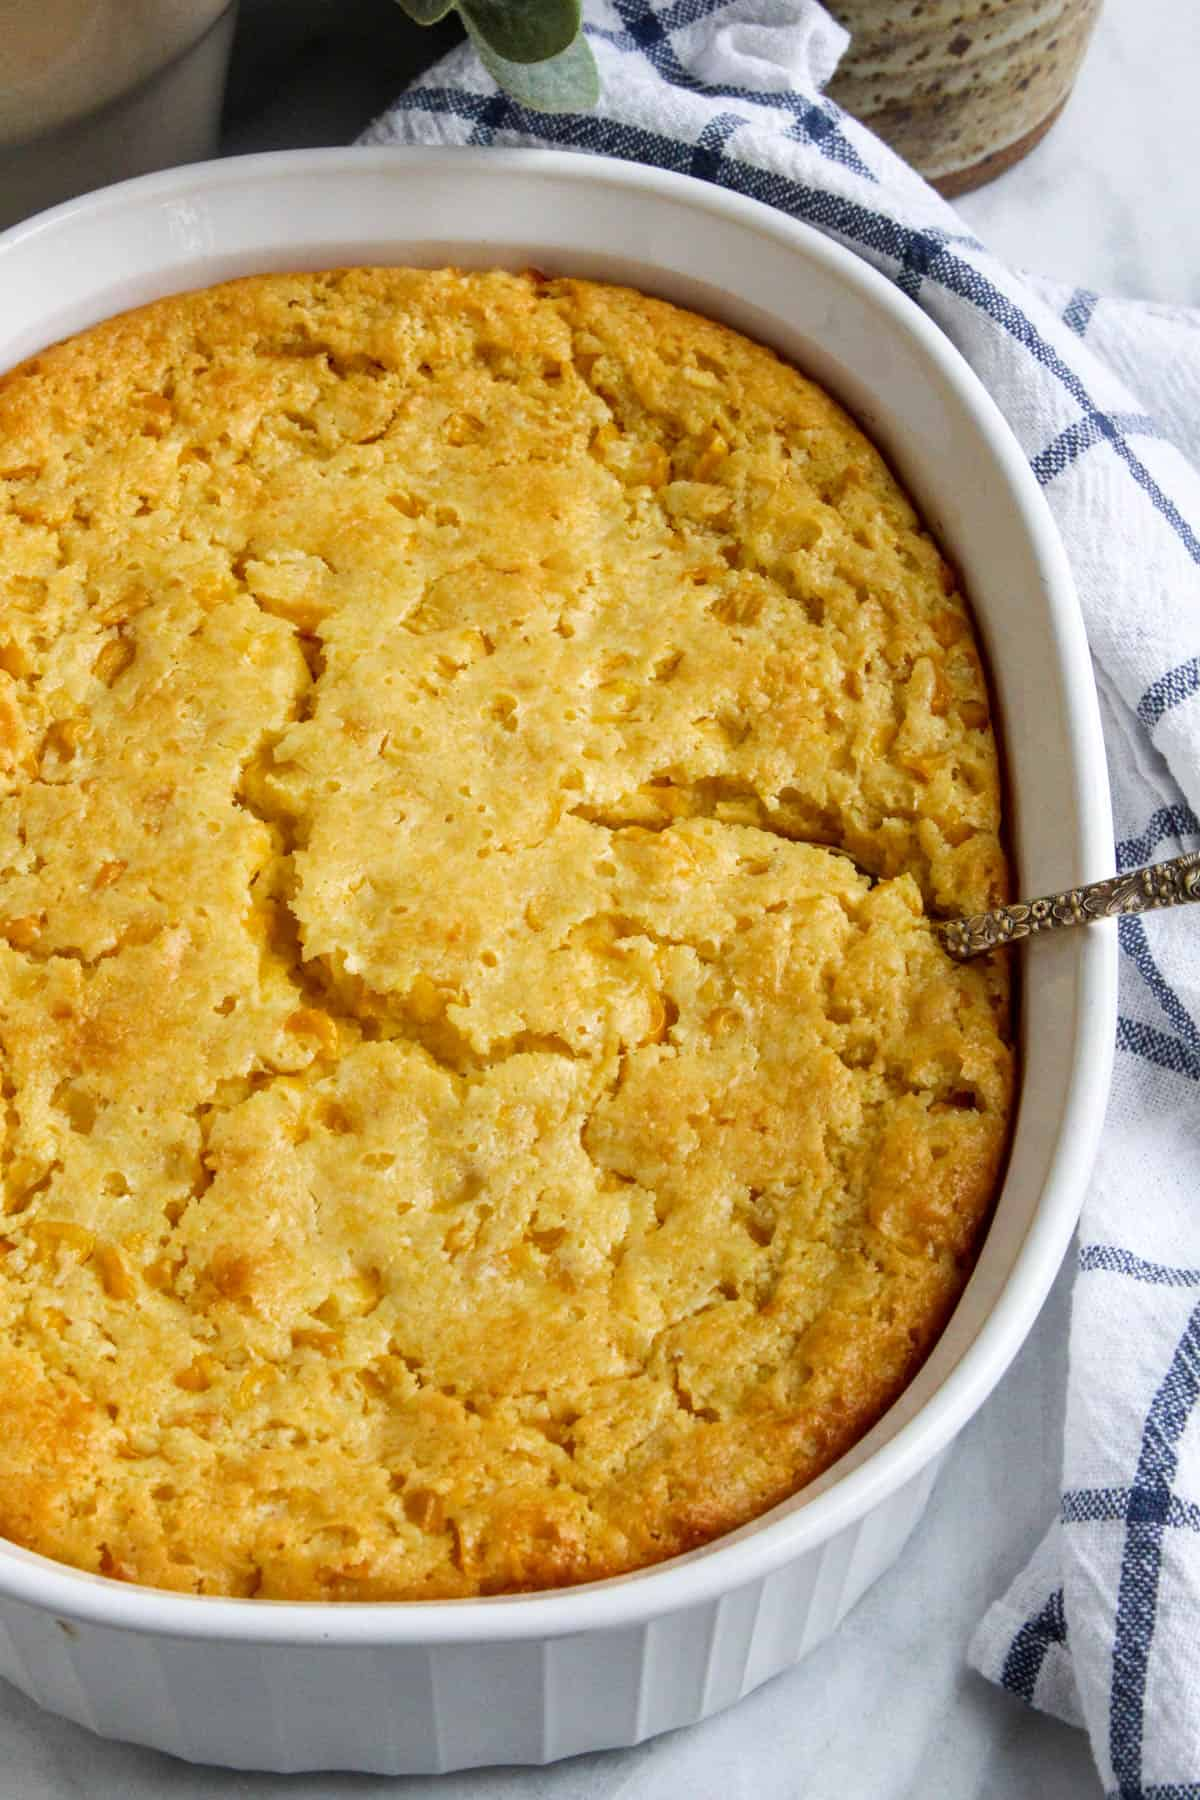 Overhead photo of baked corn soufflé in white casserole dish.